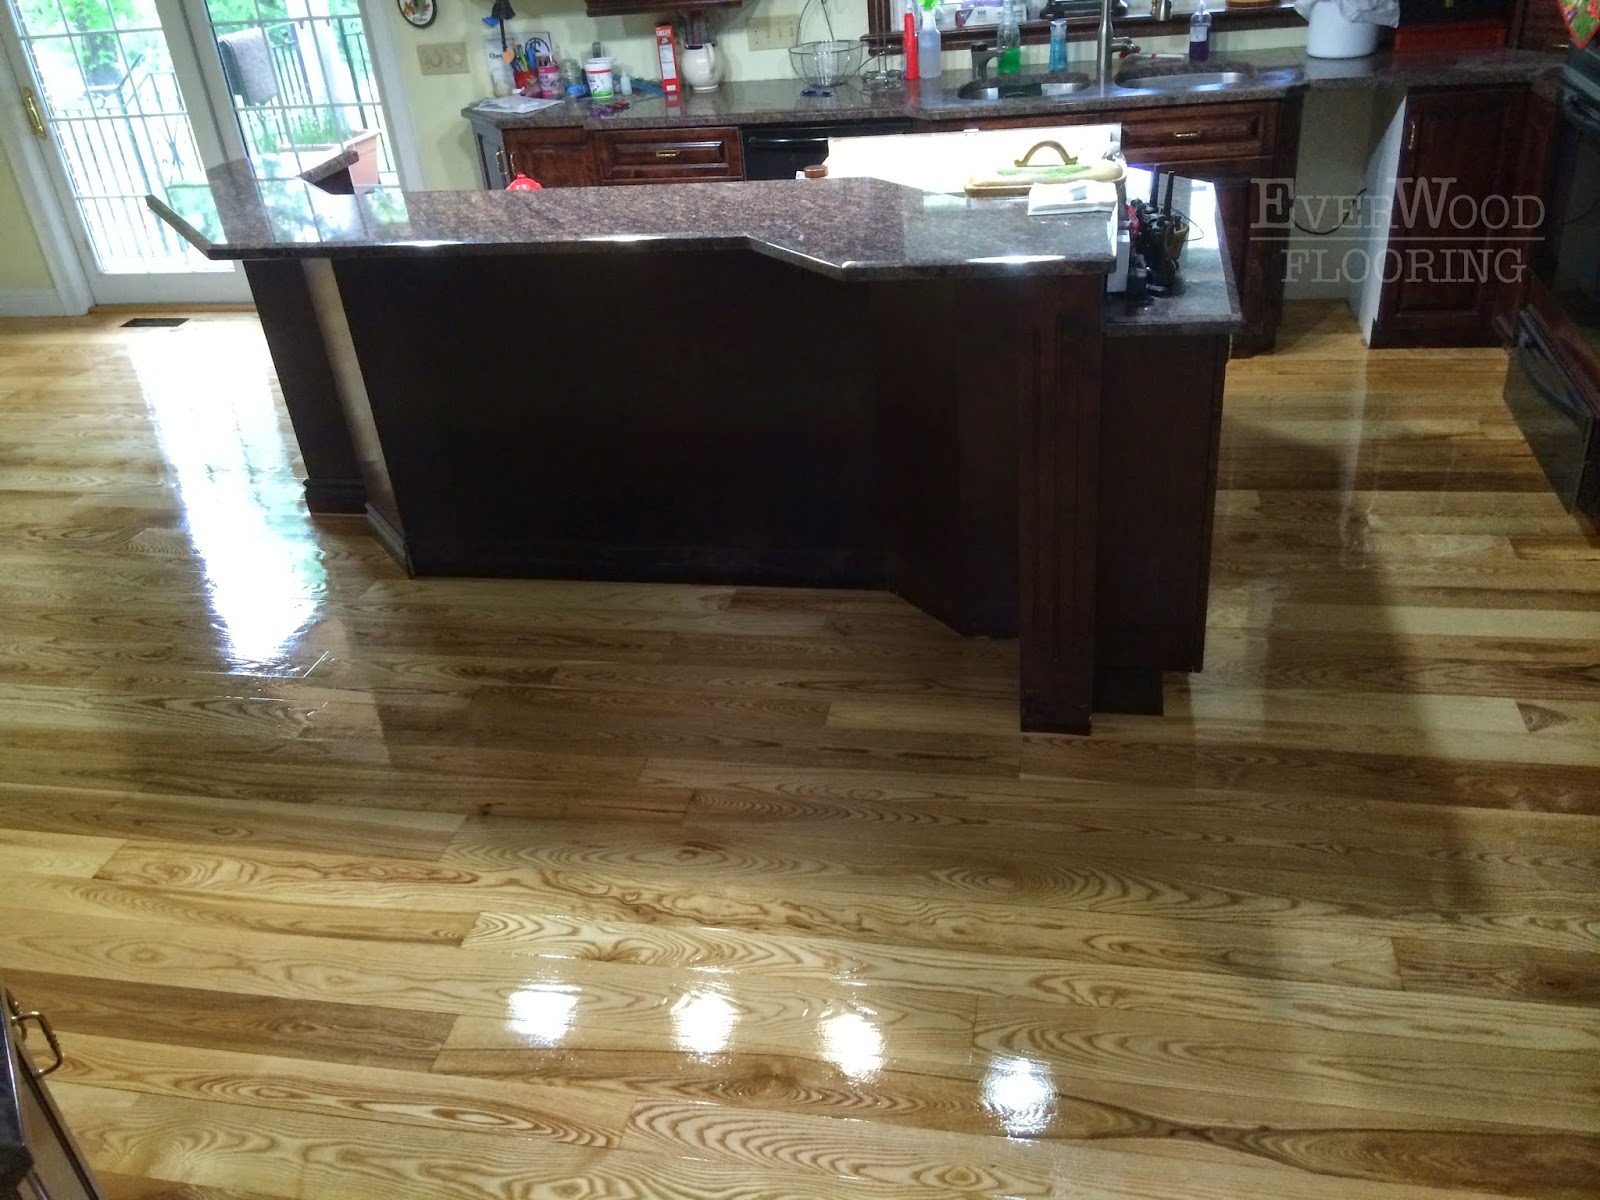 Everwood flooring project profiles solid ash flooring for Hardwood floors too shiny